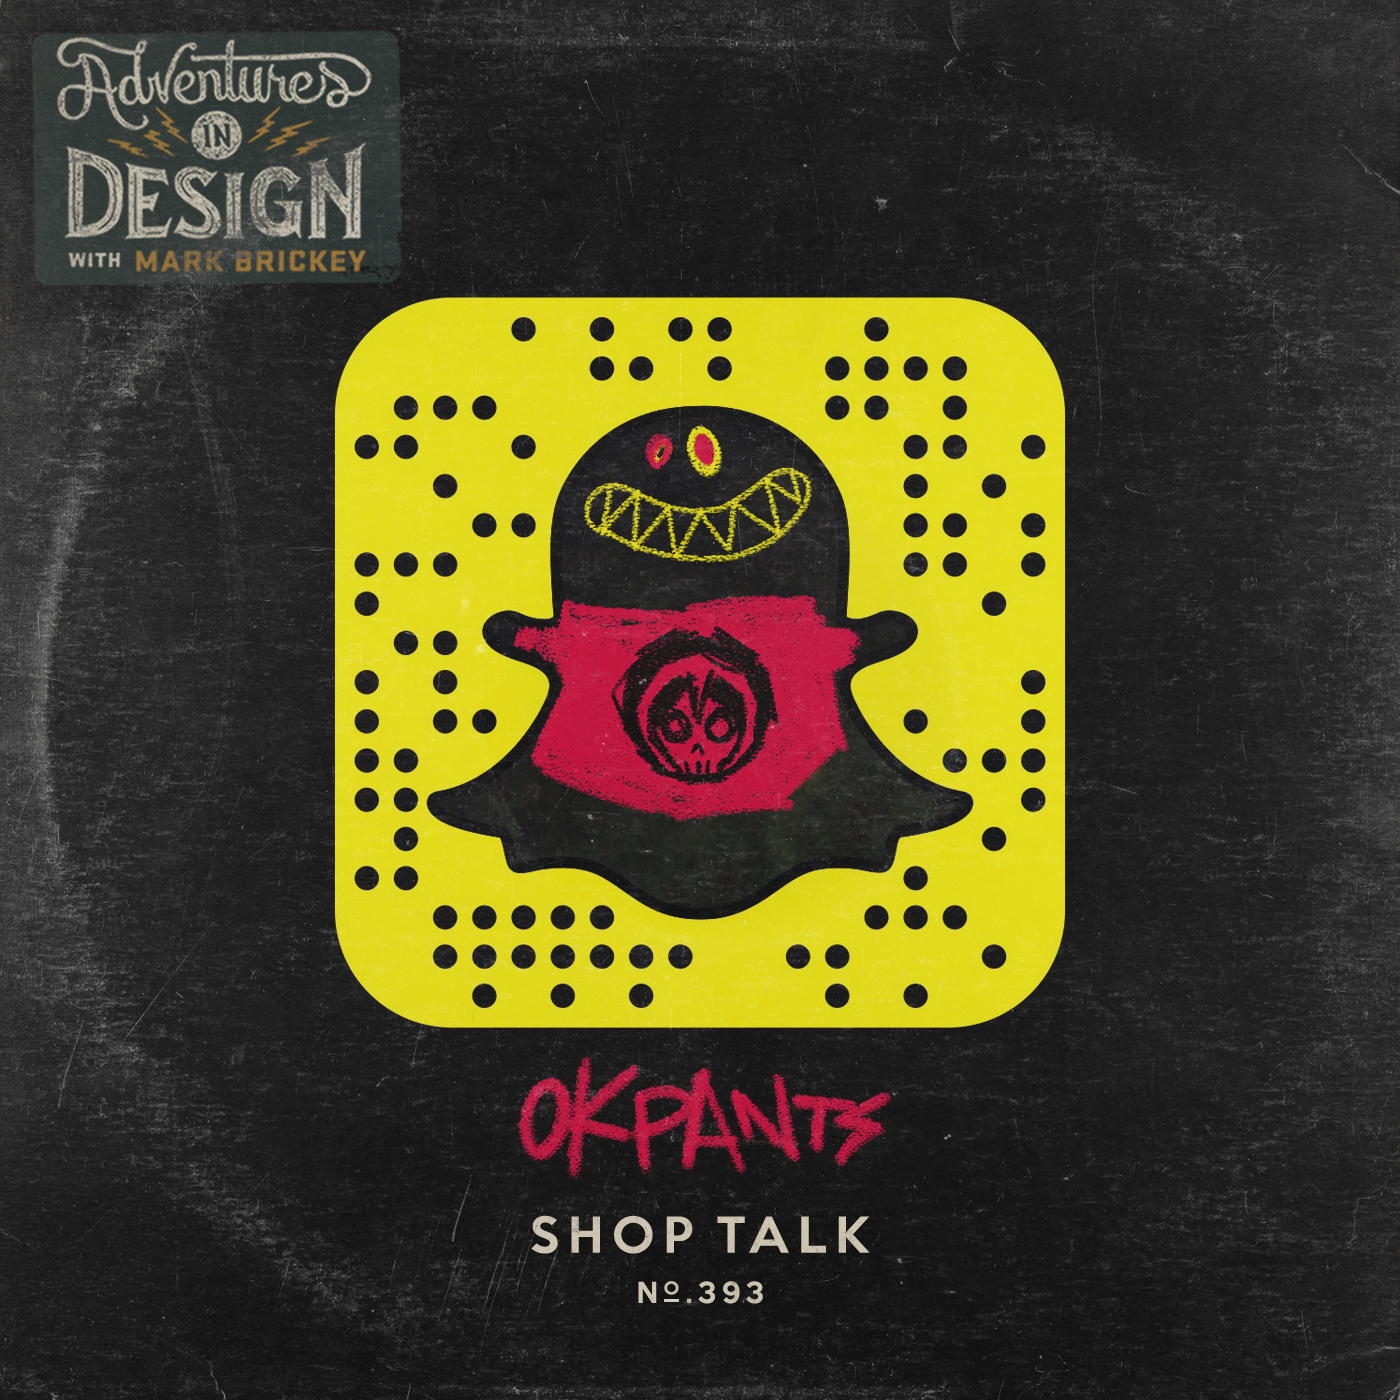 Episode 393 - Shop Talk Friday with OK Pants Aaron Sechrist